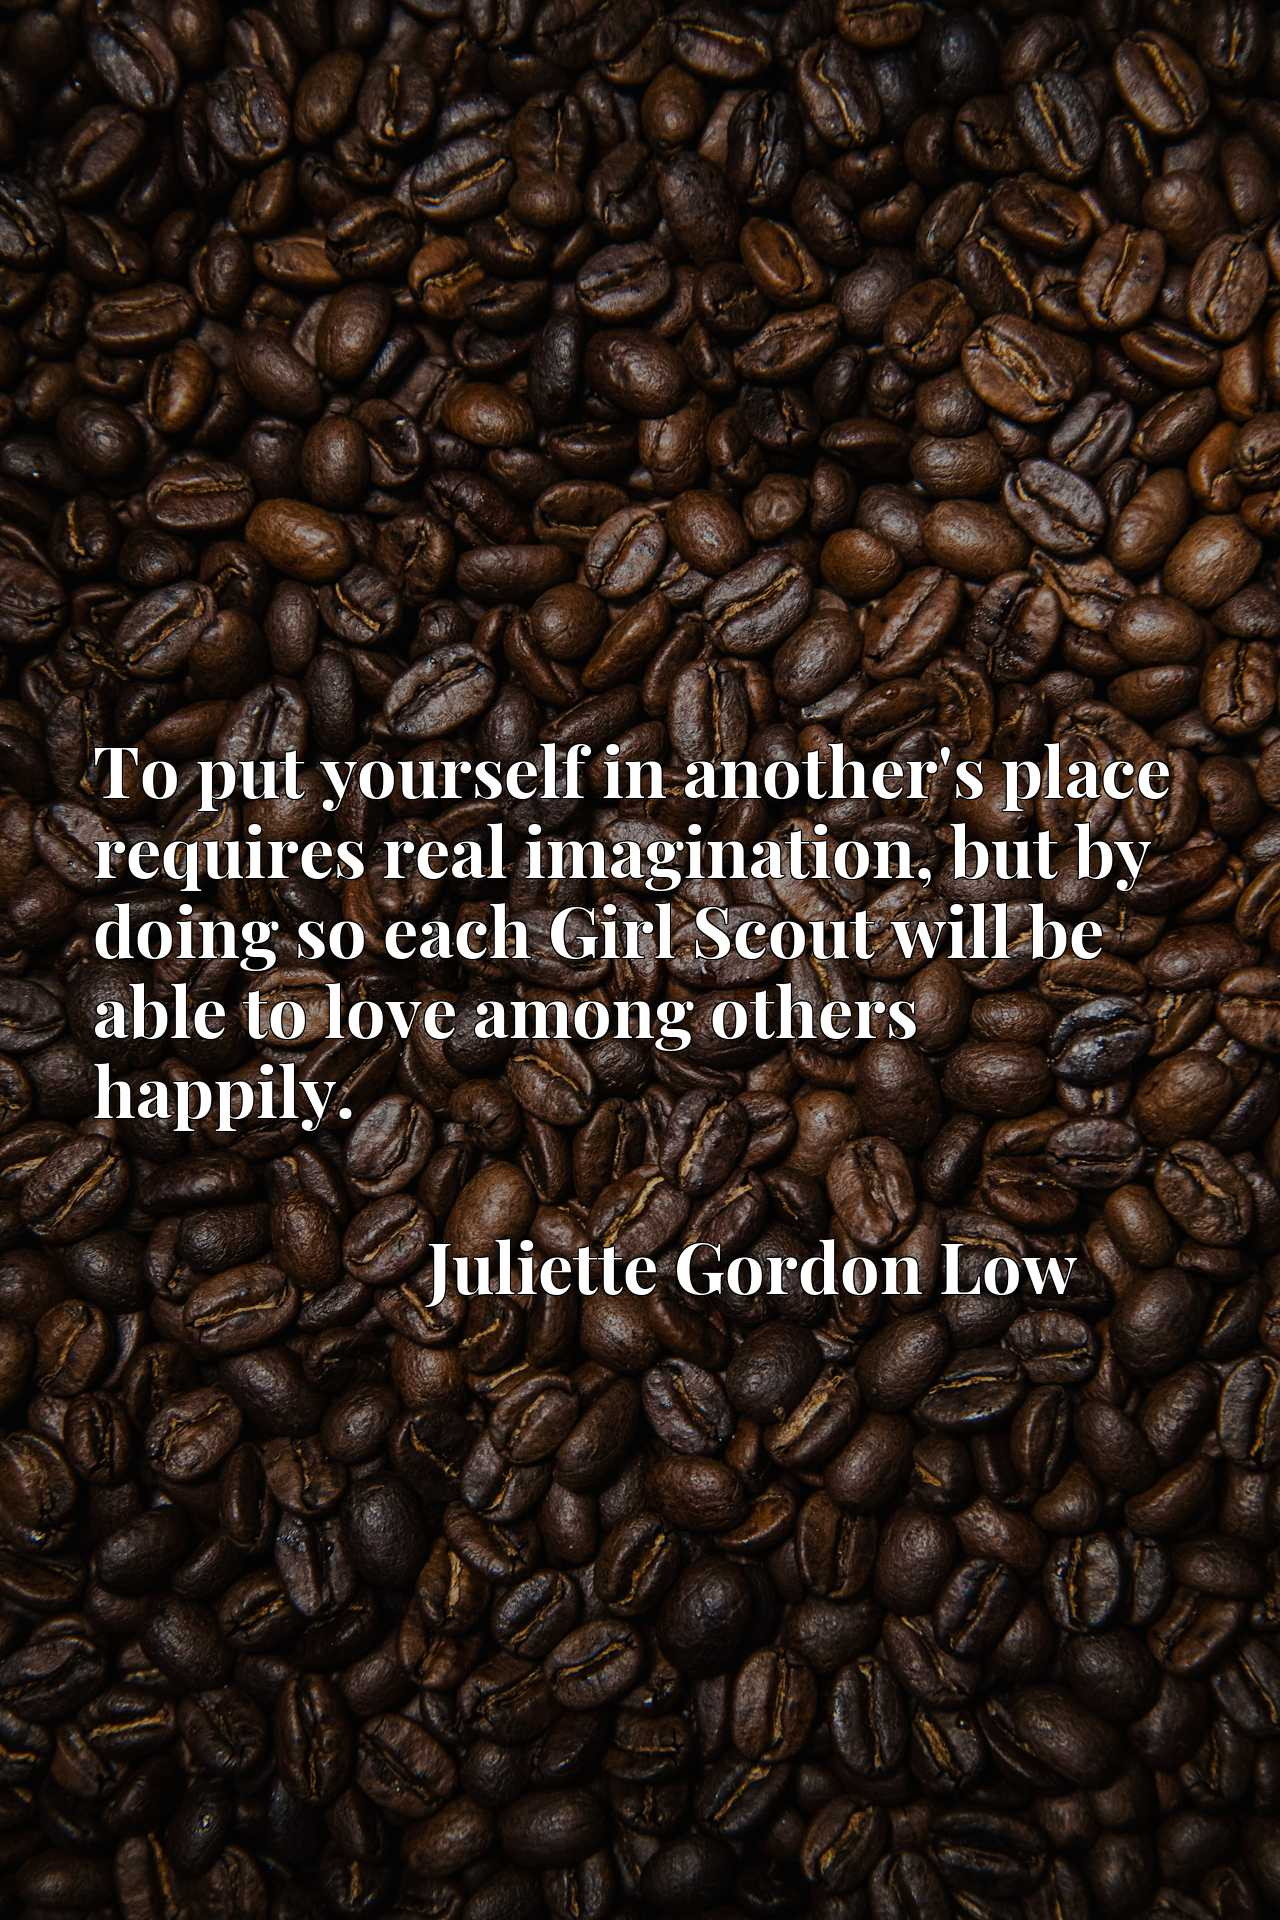 Quote Picture :To put yourself in another's place requires real imagination, but by doing so each Girl Scout will be able to love among others happily.